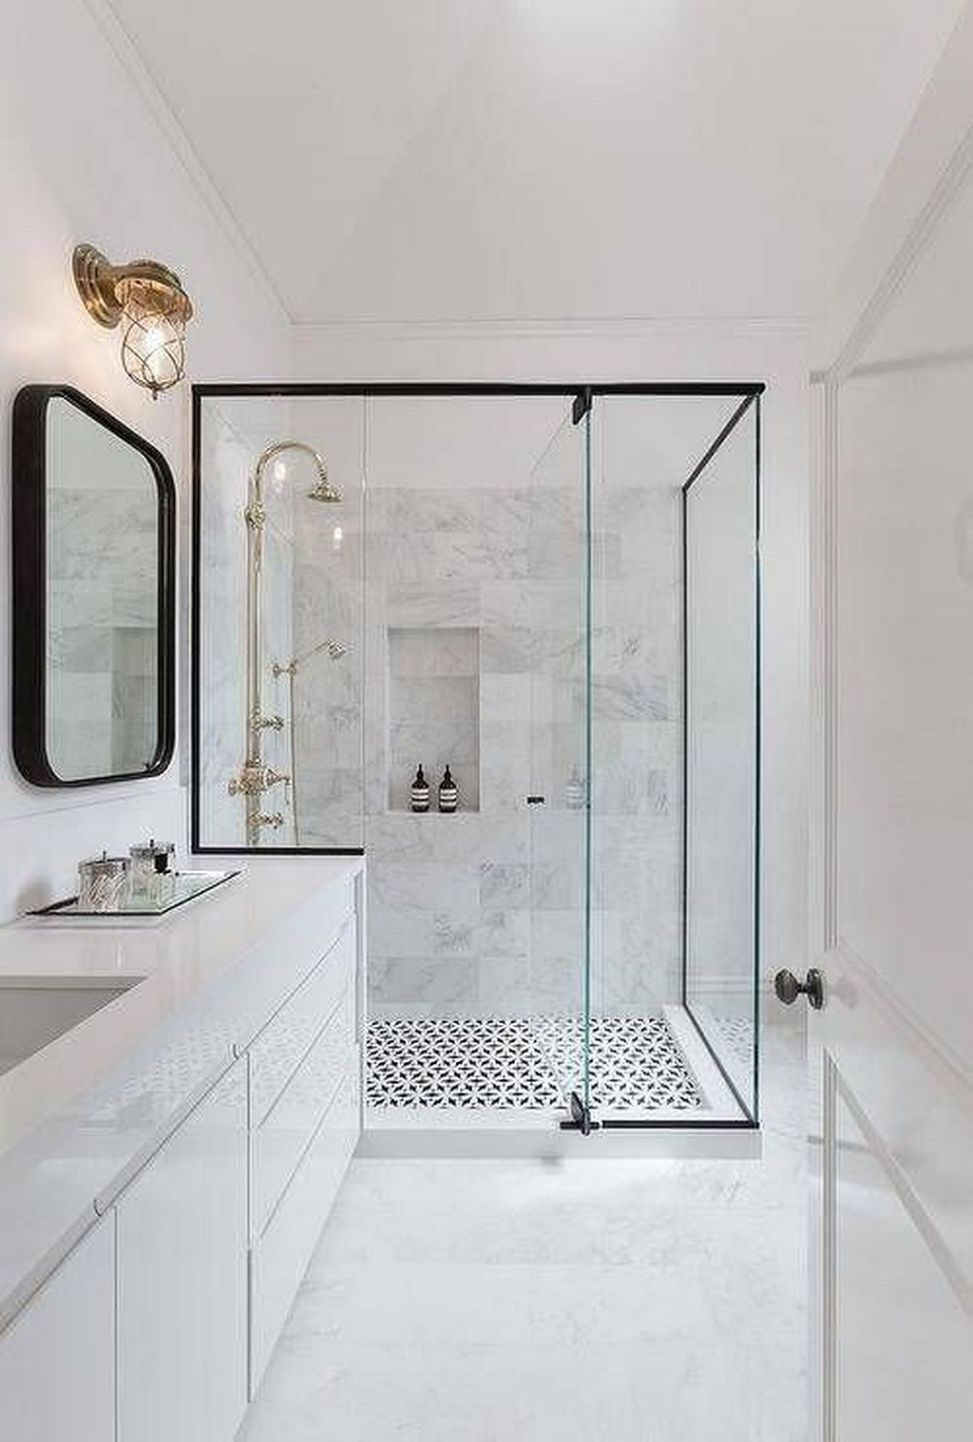 Latest Trends In Bathroom Tile Design (56) | Future home design ...